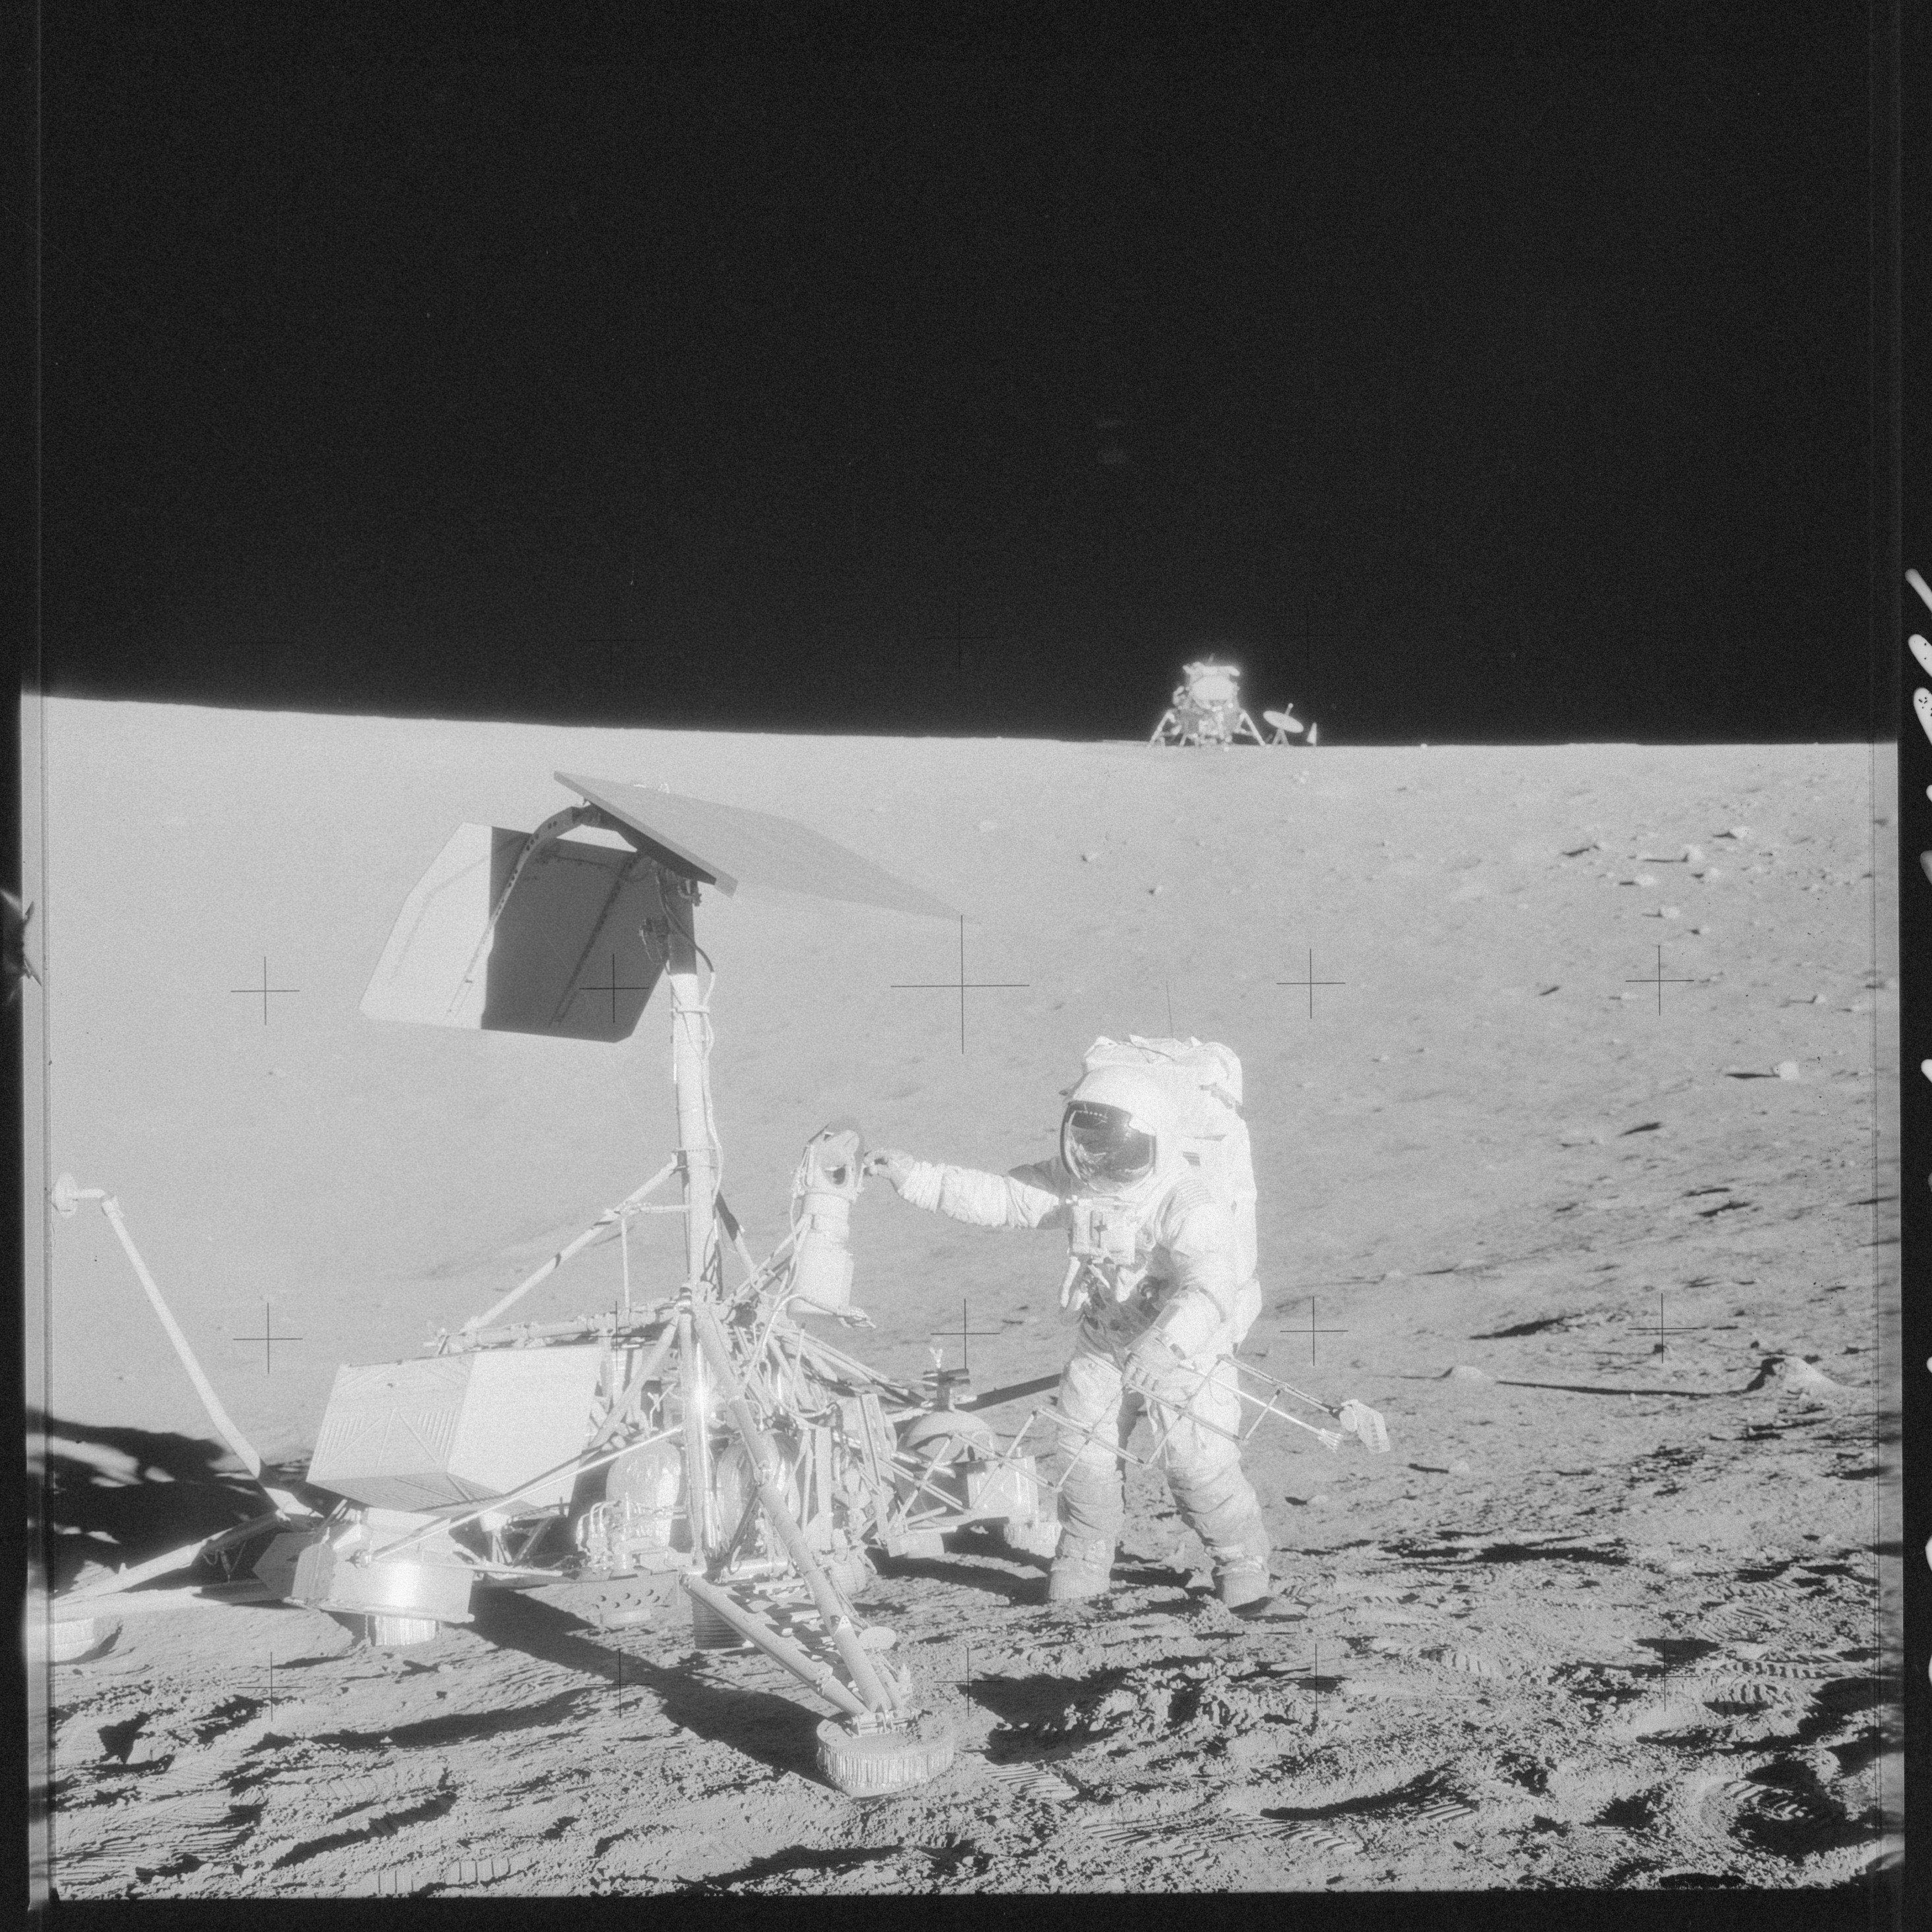 Candid Apollo 12 Original 1969 Lunar Surface Photographs Collectibles